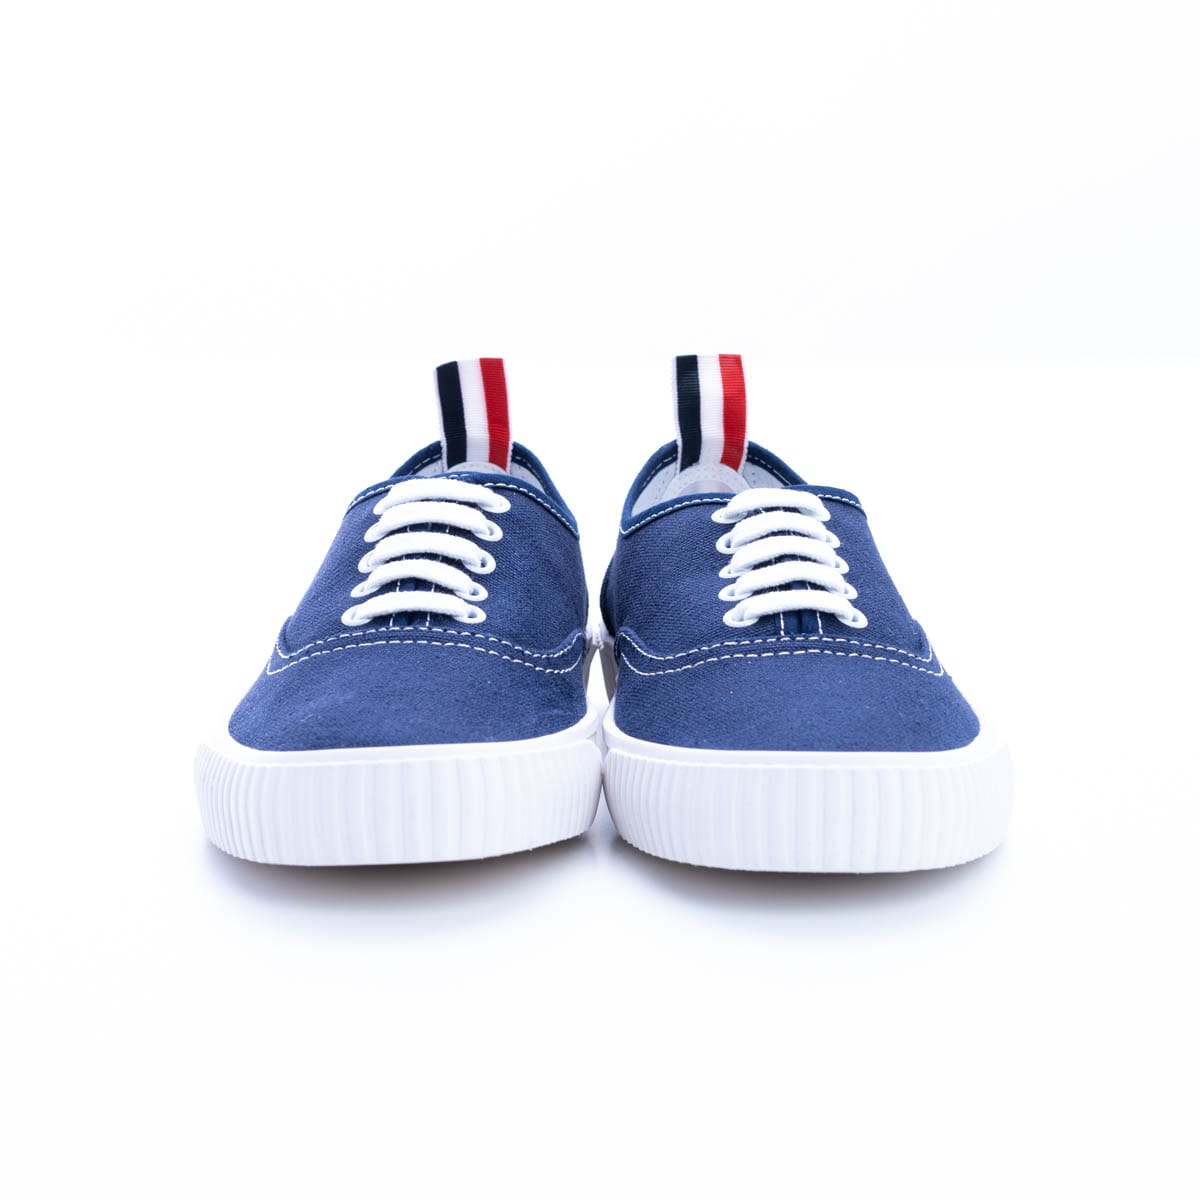 Thom Browne Sneakers COTTON CANVAS HERITAGE SNEAKERS